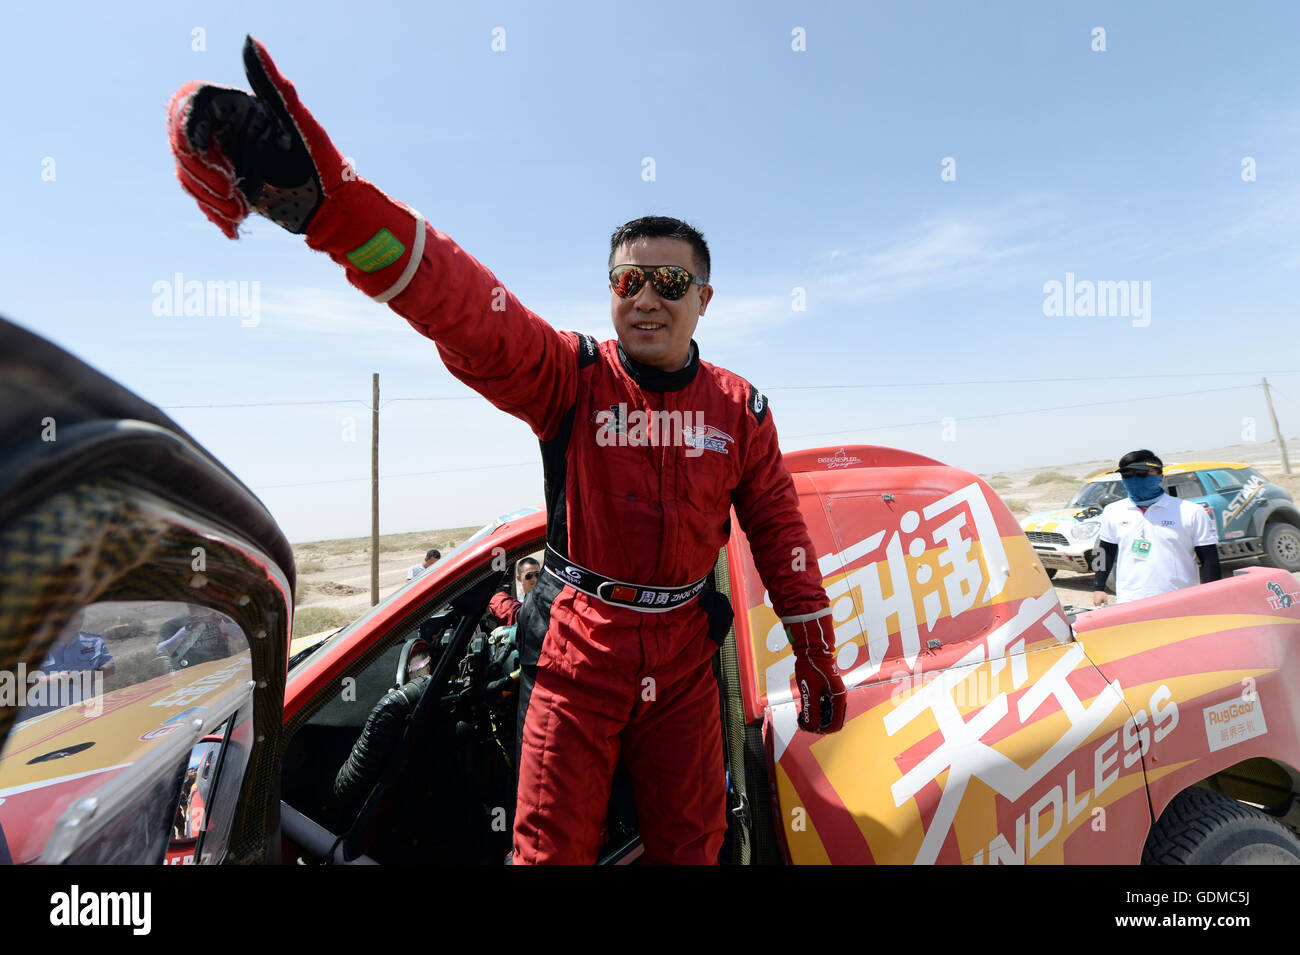 Dunhuang, China's Gansu Province. 19th July, 2016. Boundless Young Team driver Zhou Yong of China reacts after - Stock Image